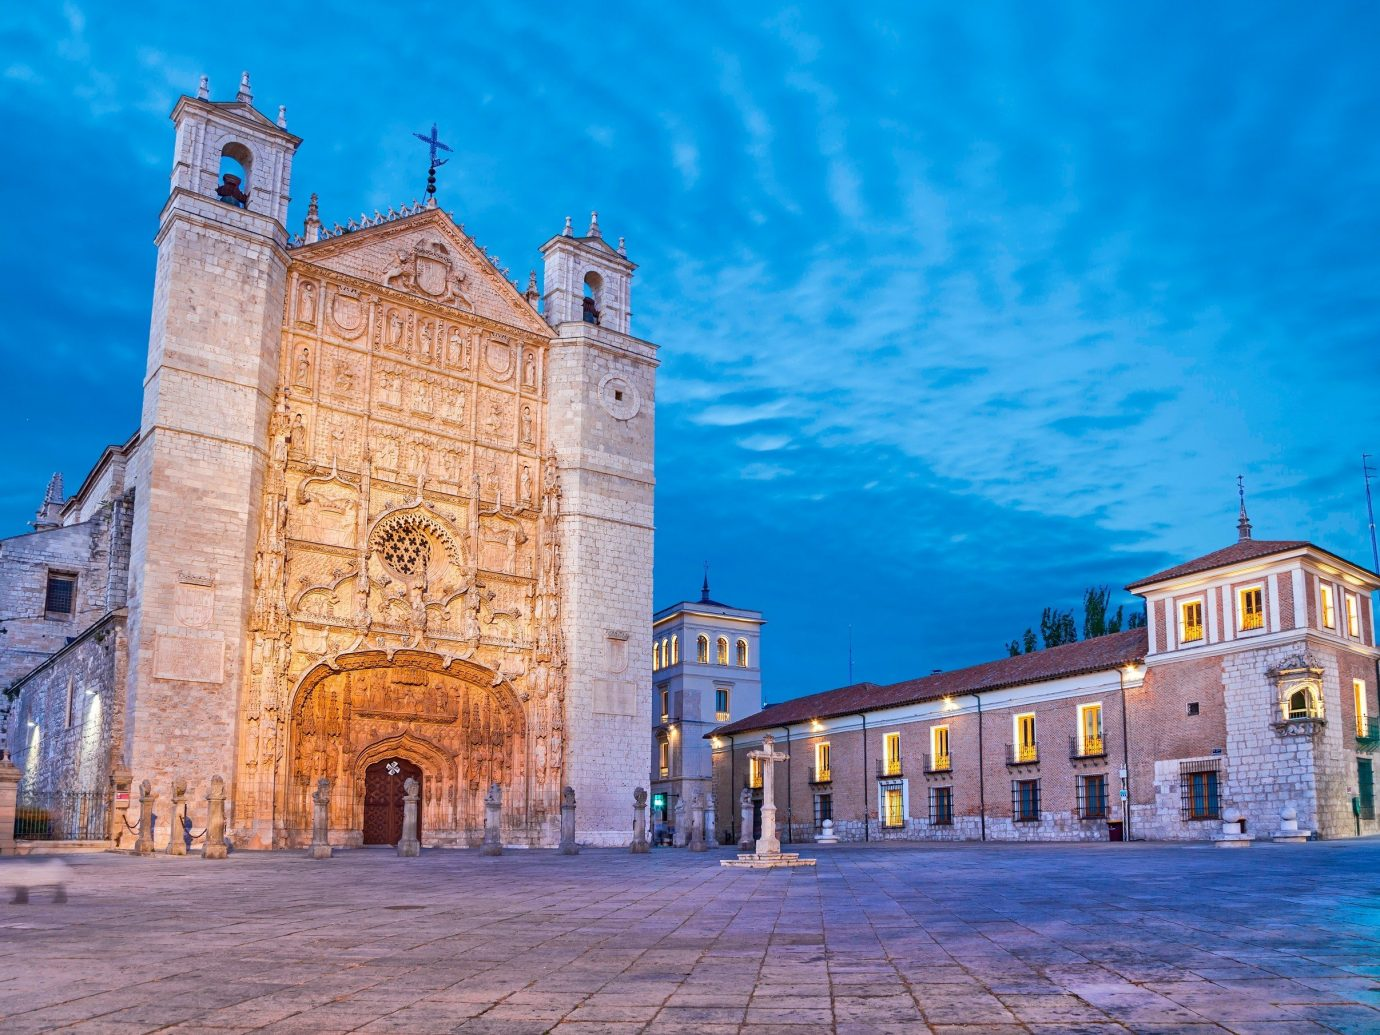 Secret Getaways Trip Ideas building outdoor landmark Town Church place of worship tower tourism cathedral cityscape facade old monastery stone castle